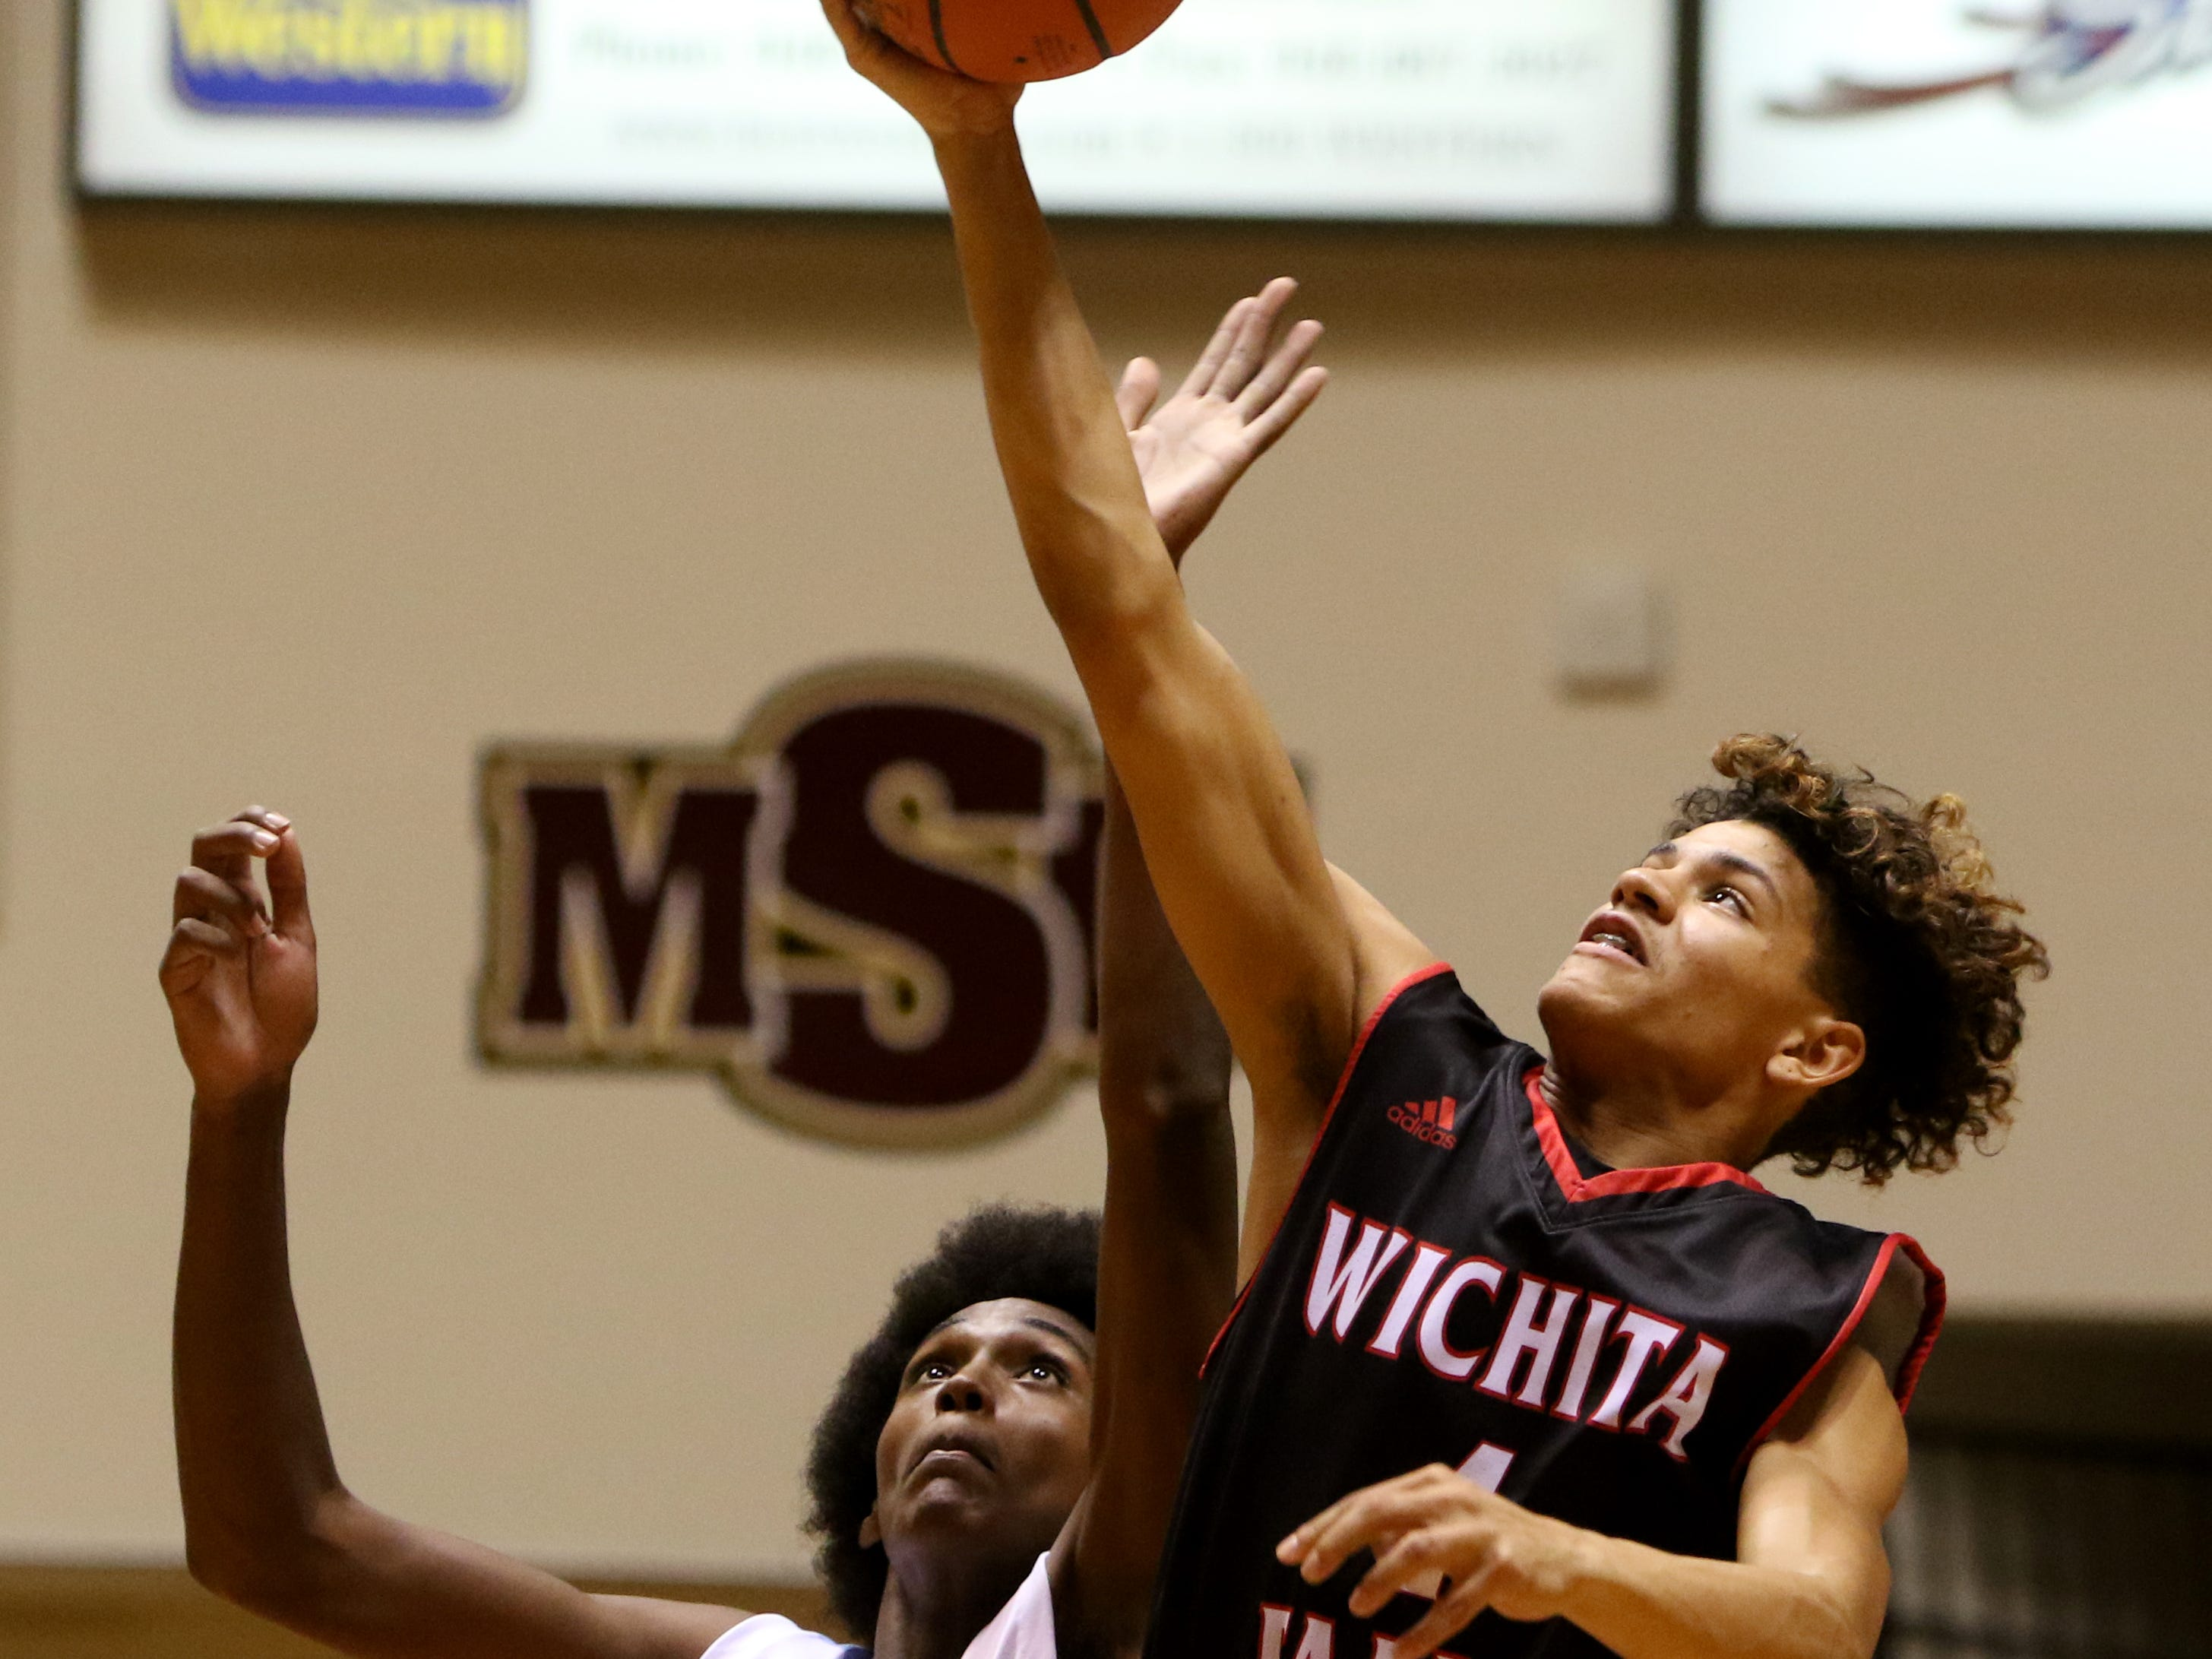 Wichita Falls High School's Leon Dennis reaches the jump ball before Hirschi's Gabe Colbert in the Wichita Falls Classic Saturday, Dec. 1, 2018, in D.L. Ligon Coliseum at Midwestern State University.